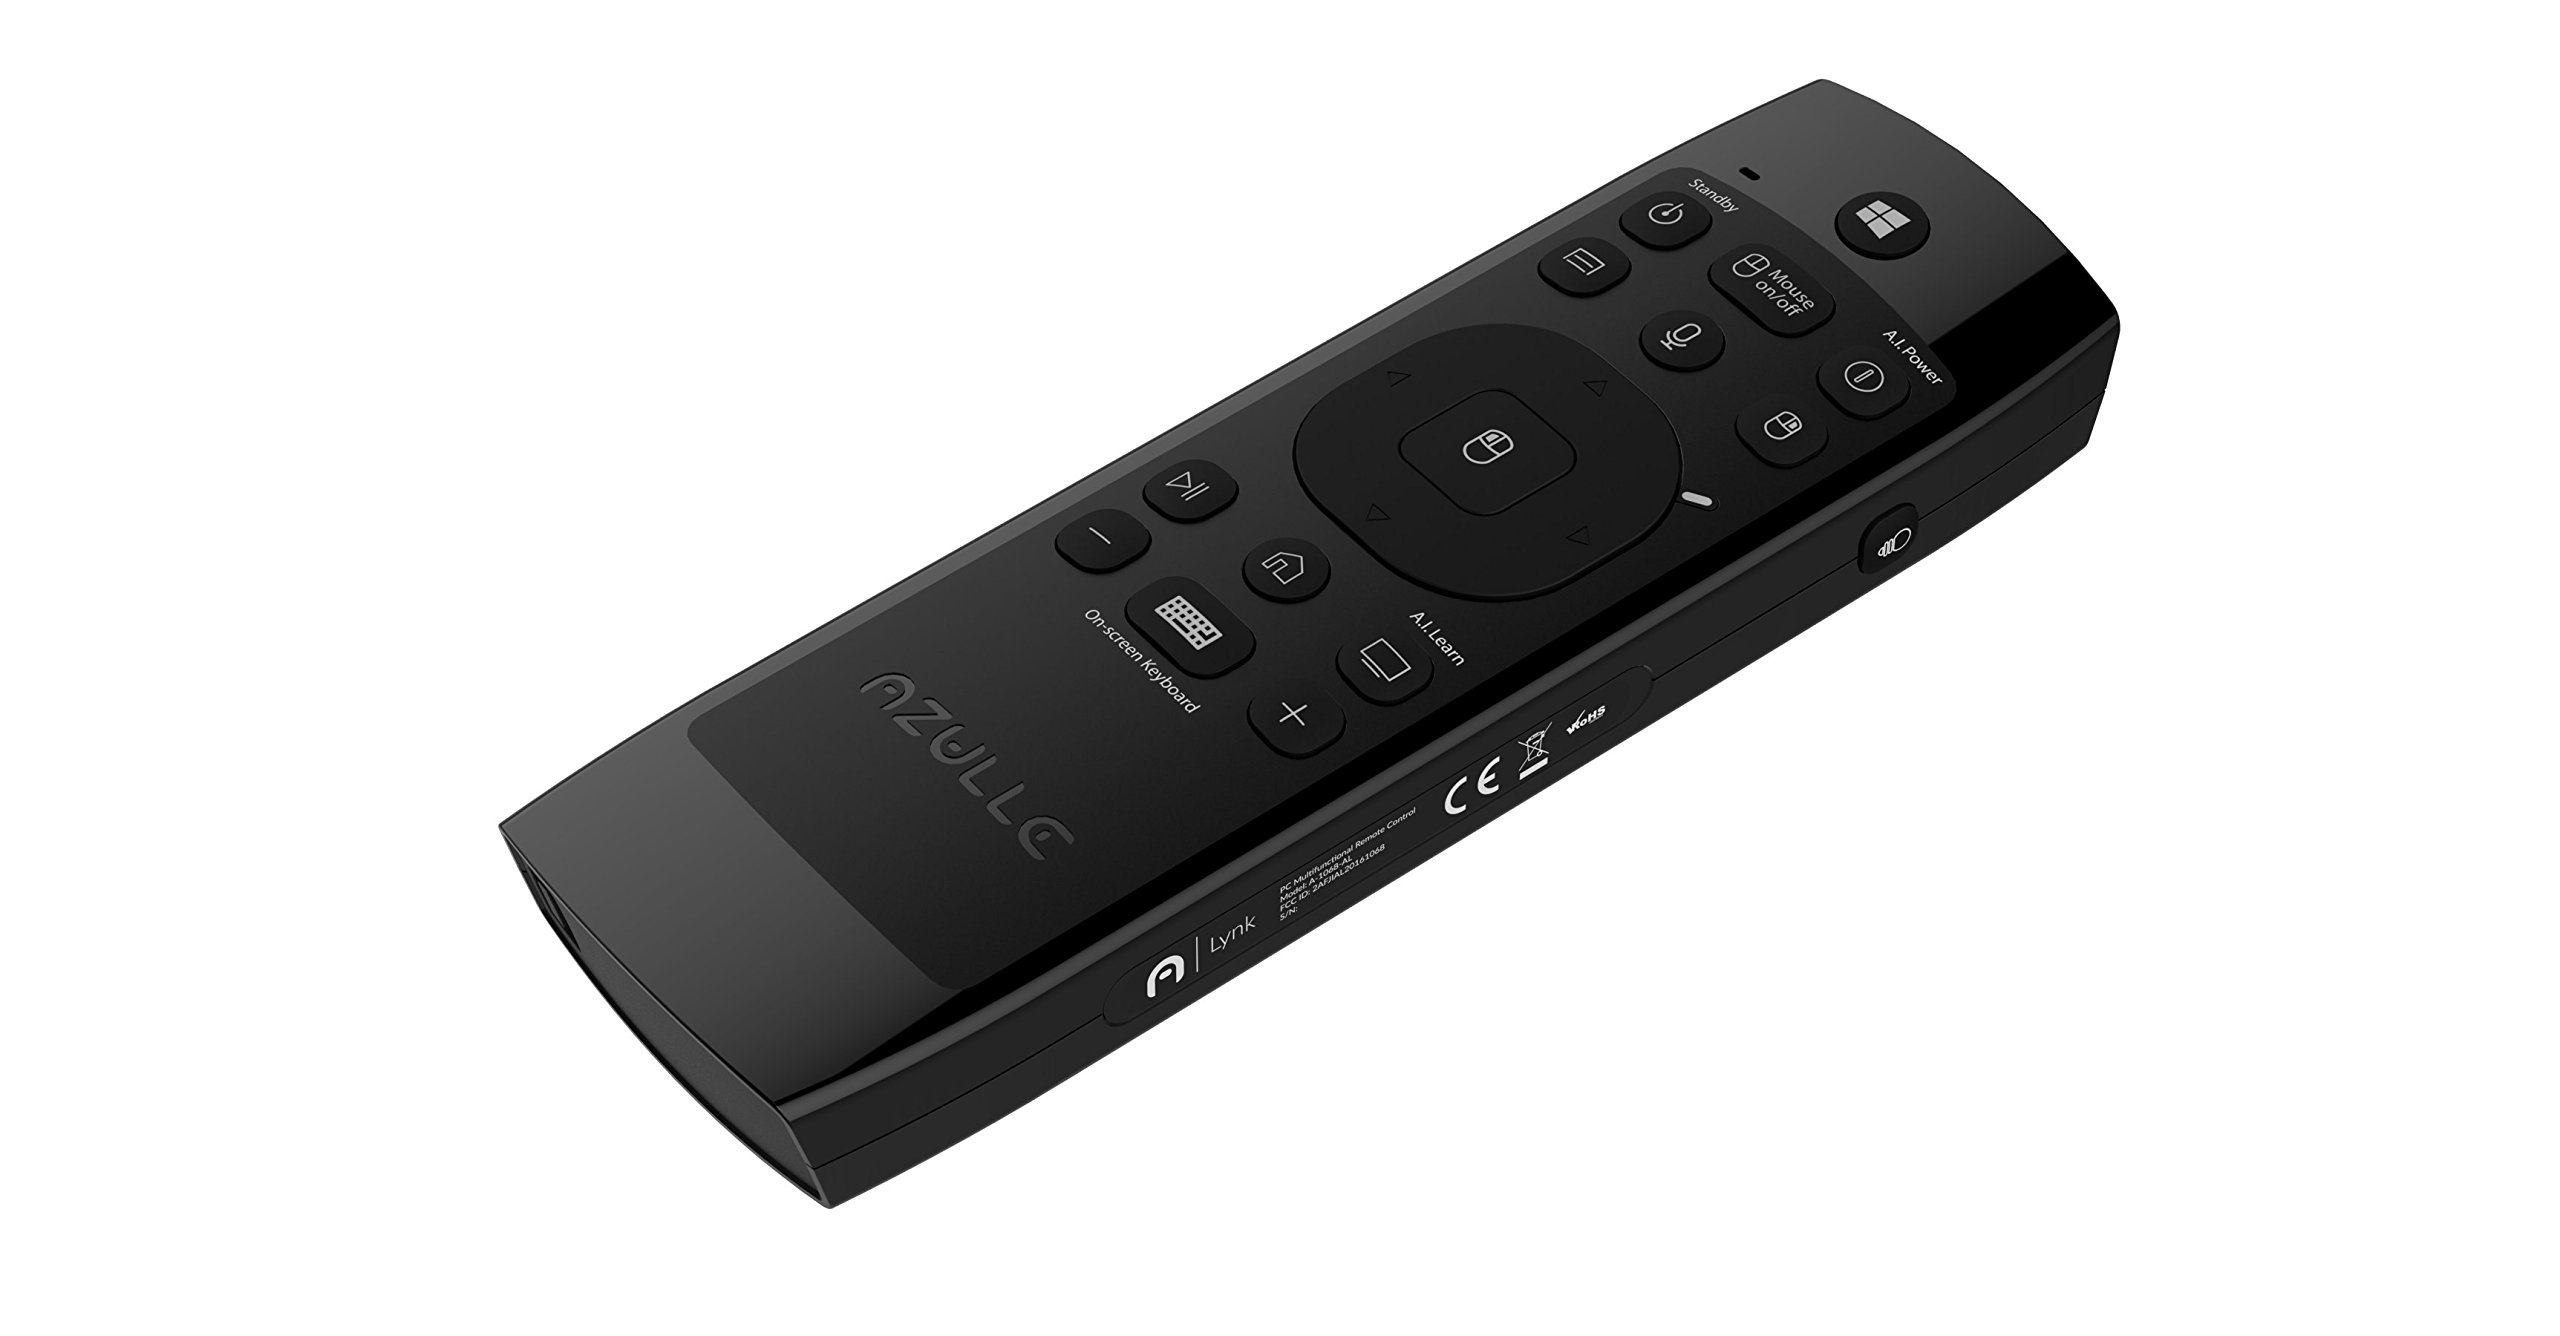 Azulle Lynk Multifunctional Remote Control – Universal Wireless Mouse Touchpad, Windows Keyboard, Backlit, Microphone